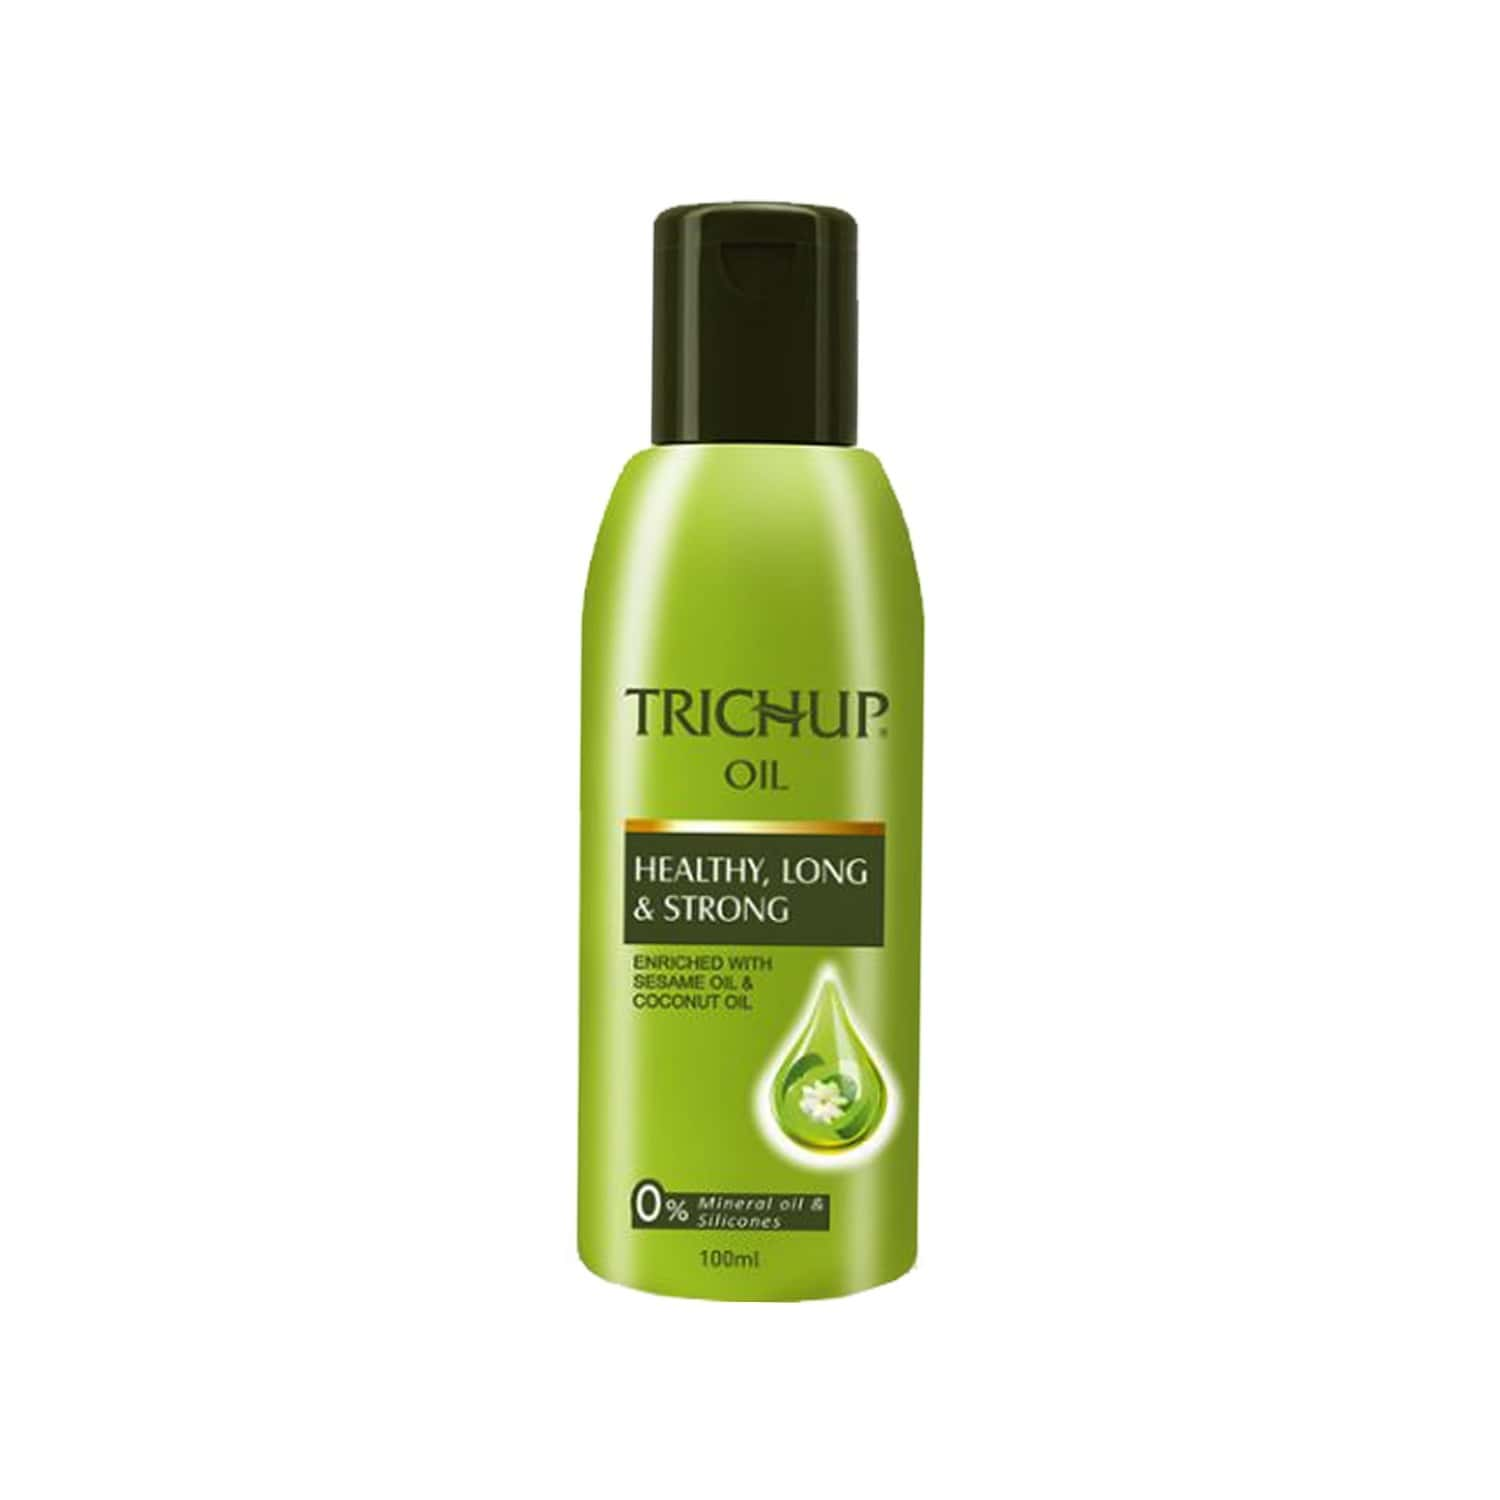 Trichup Healthy Long & Strong Oil - 100 Ml